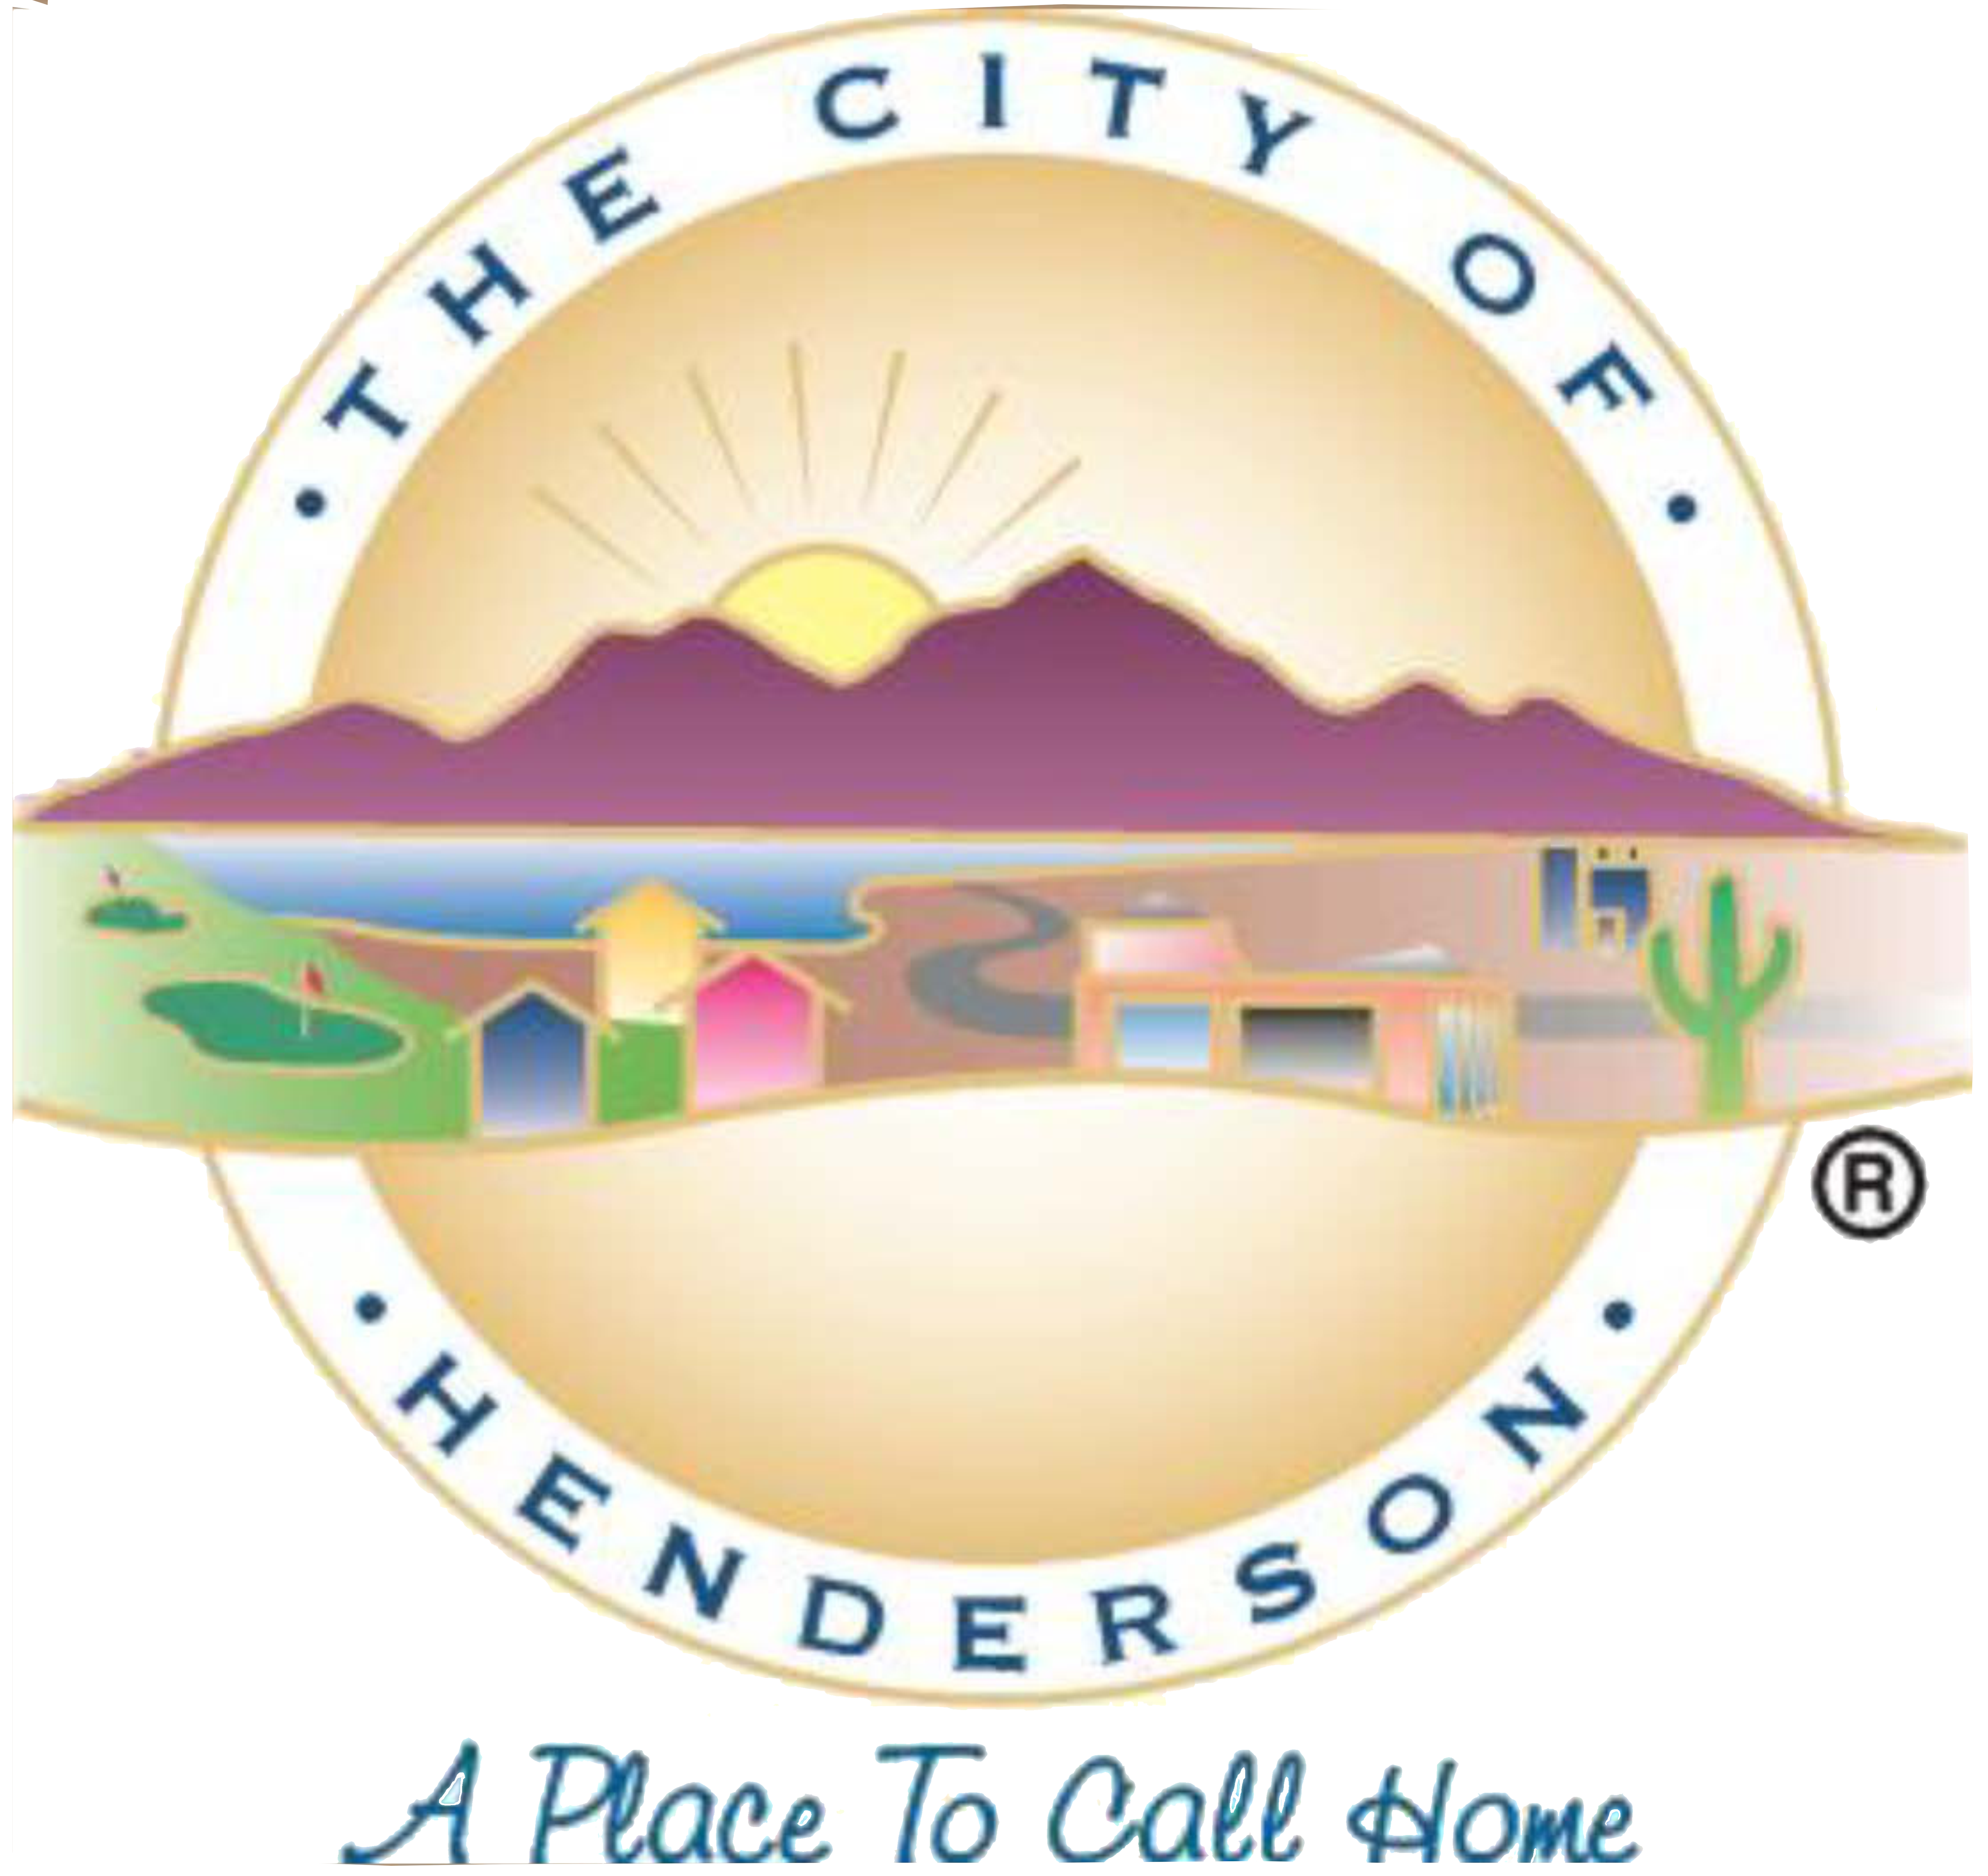 The City of Henderson